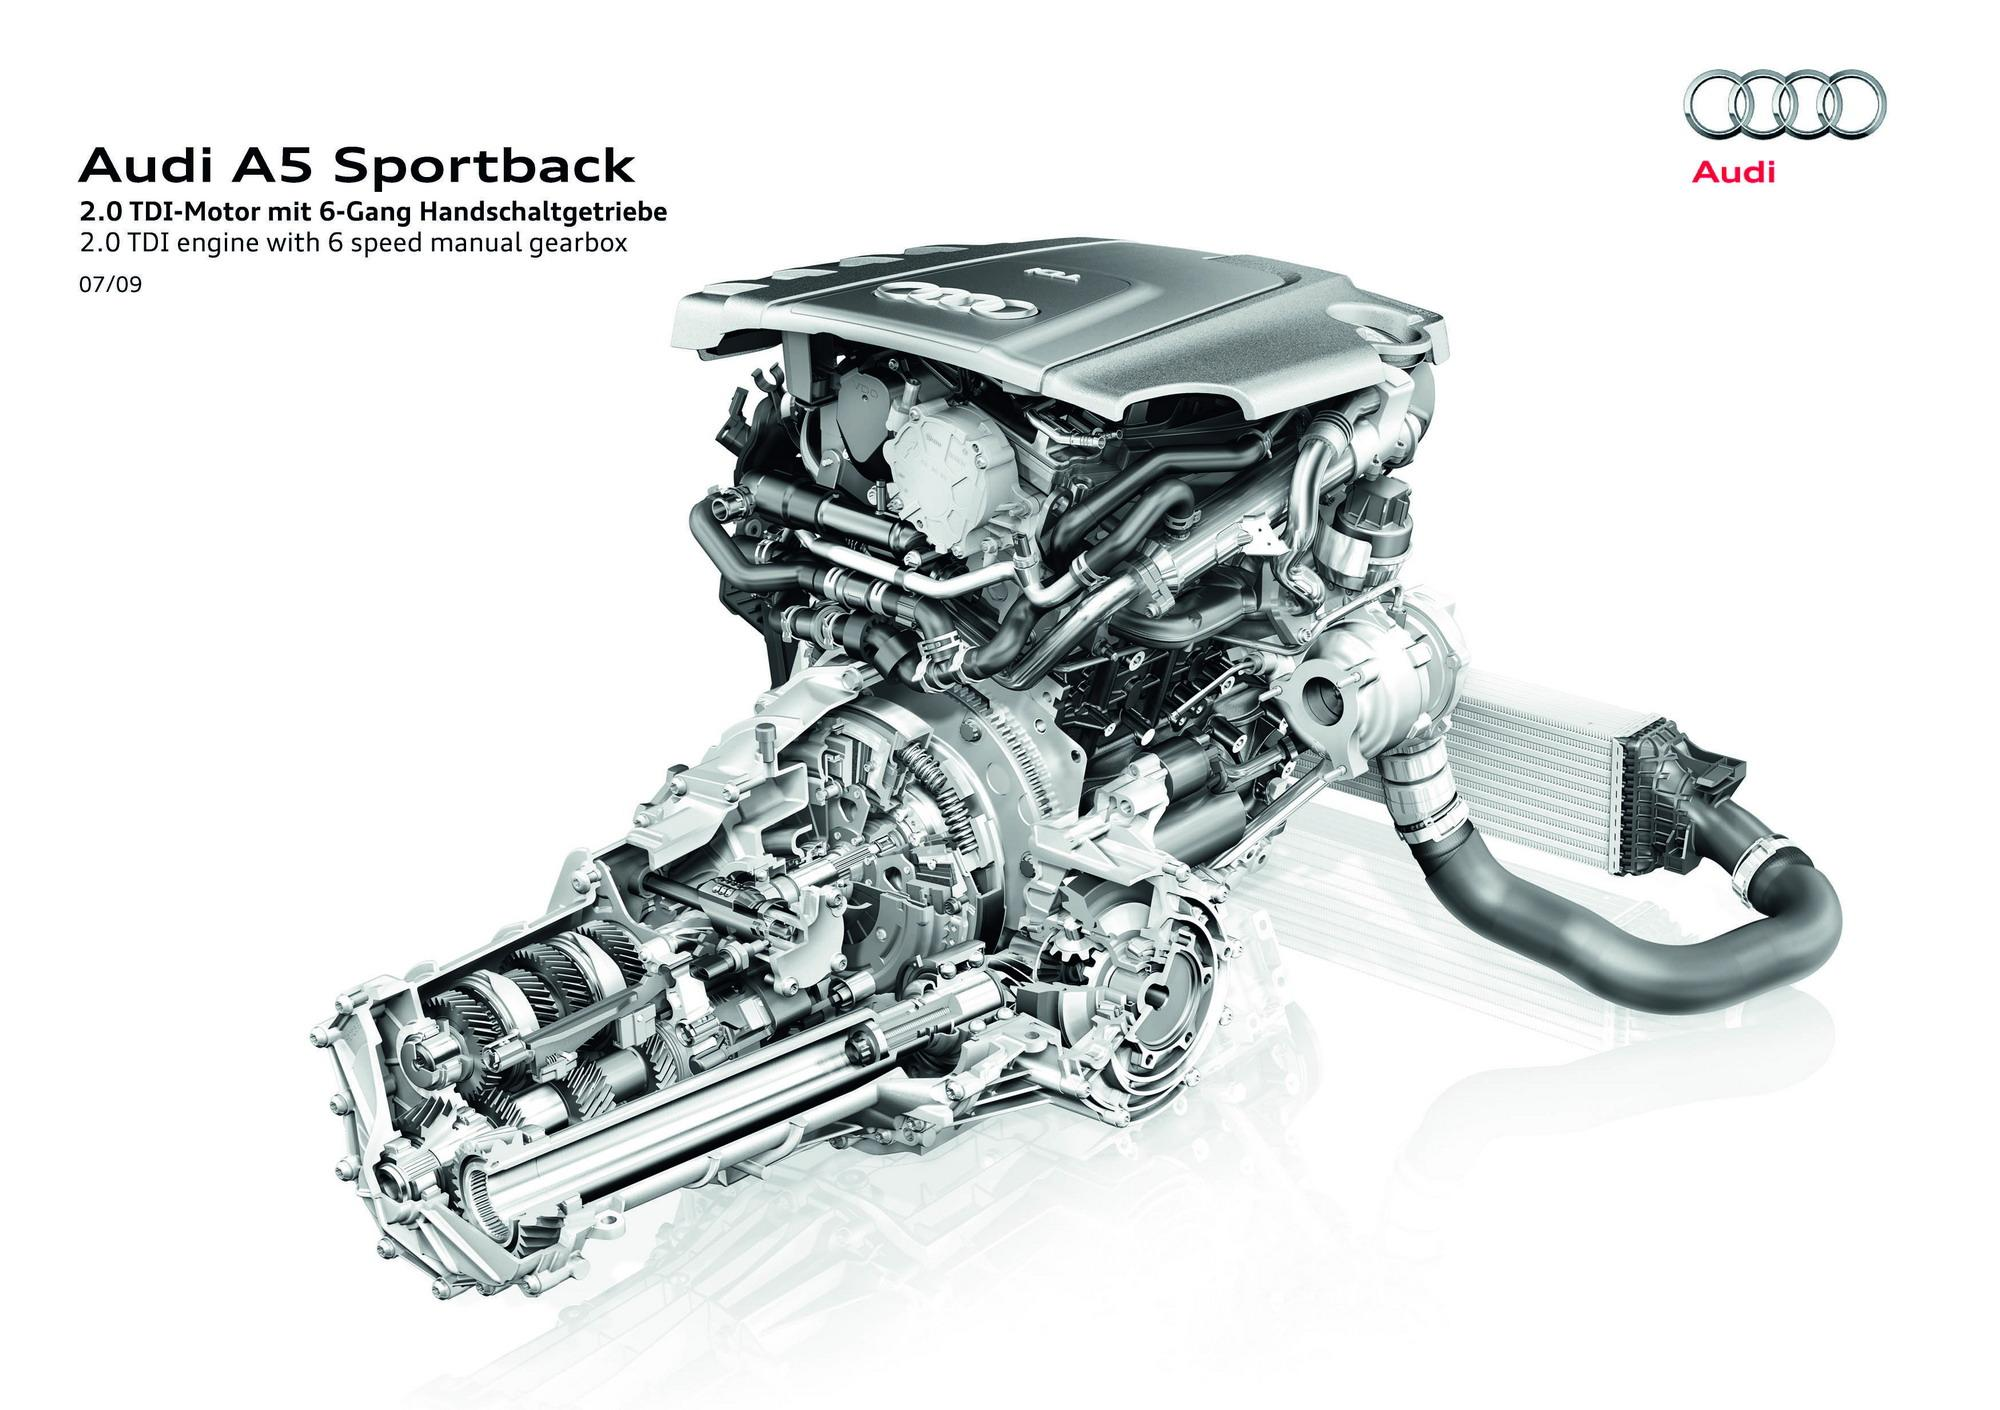 2010 Audi A5 Sportback Top Speed Wiring Diagram